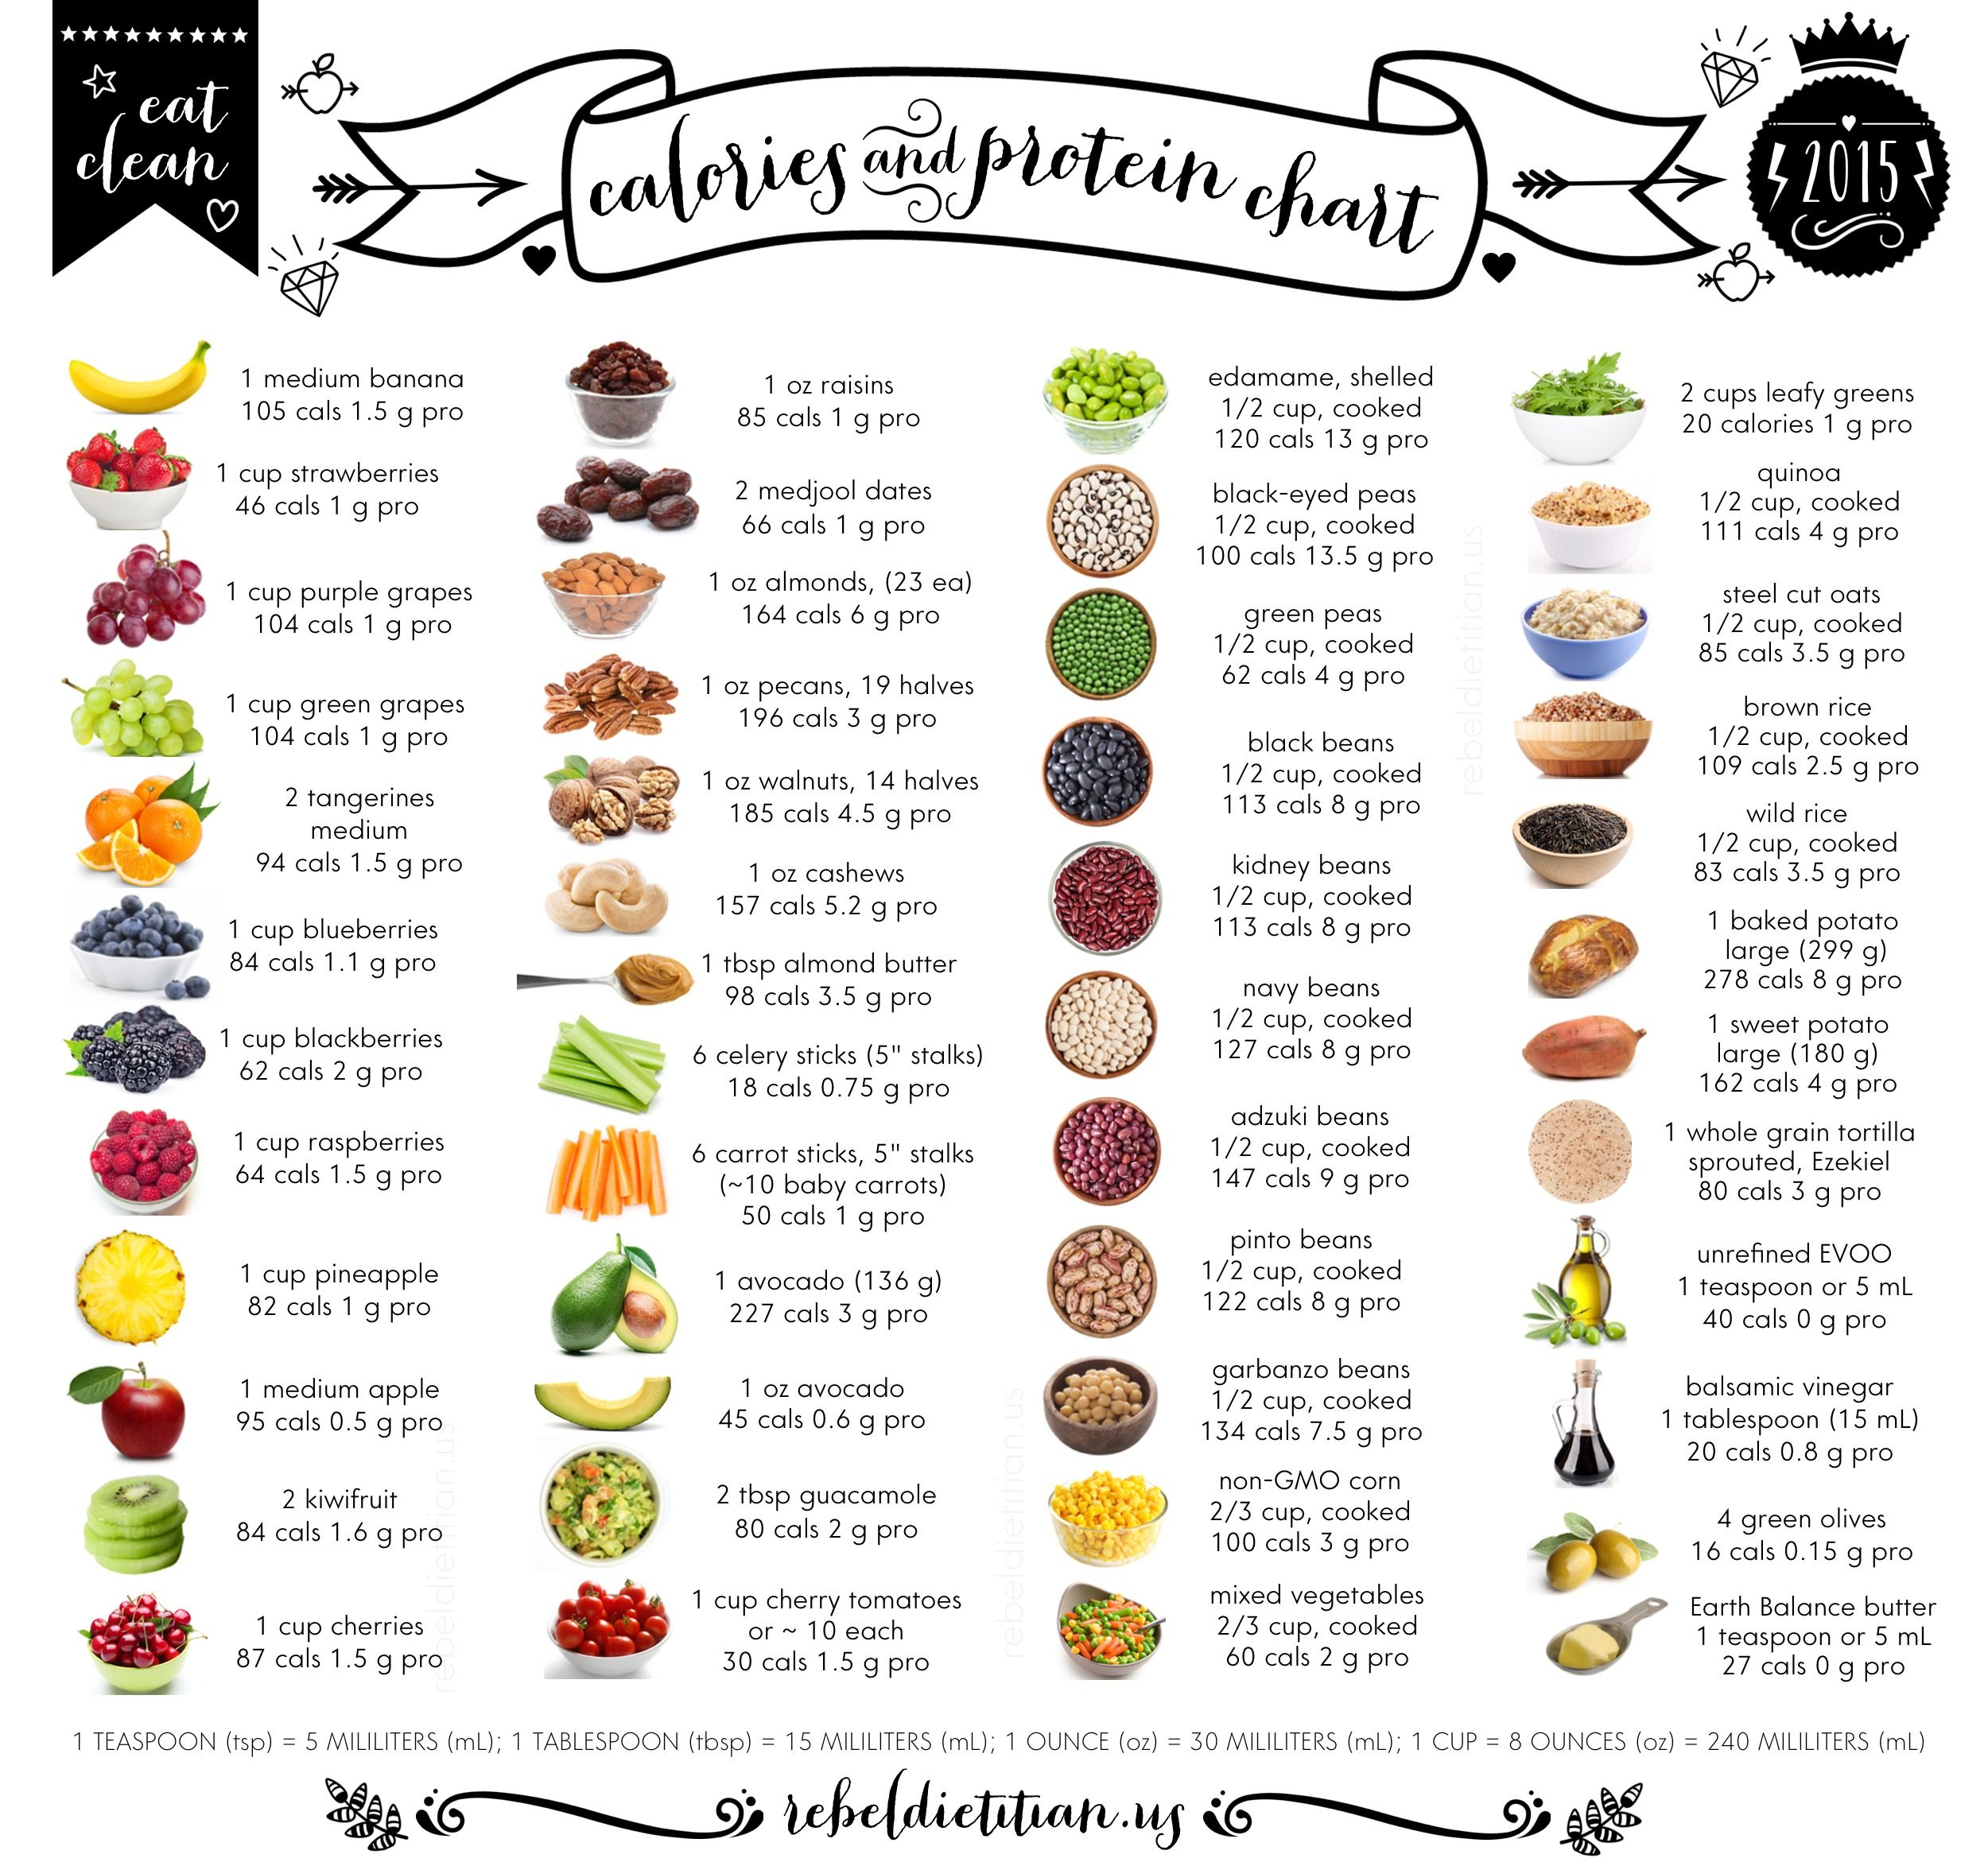 Posters protein chart mcdonalds and chart